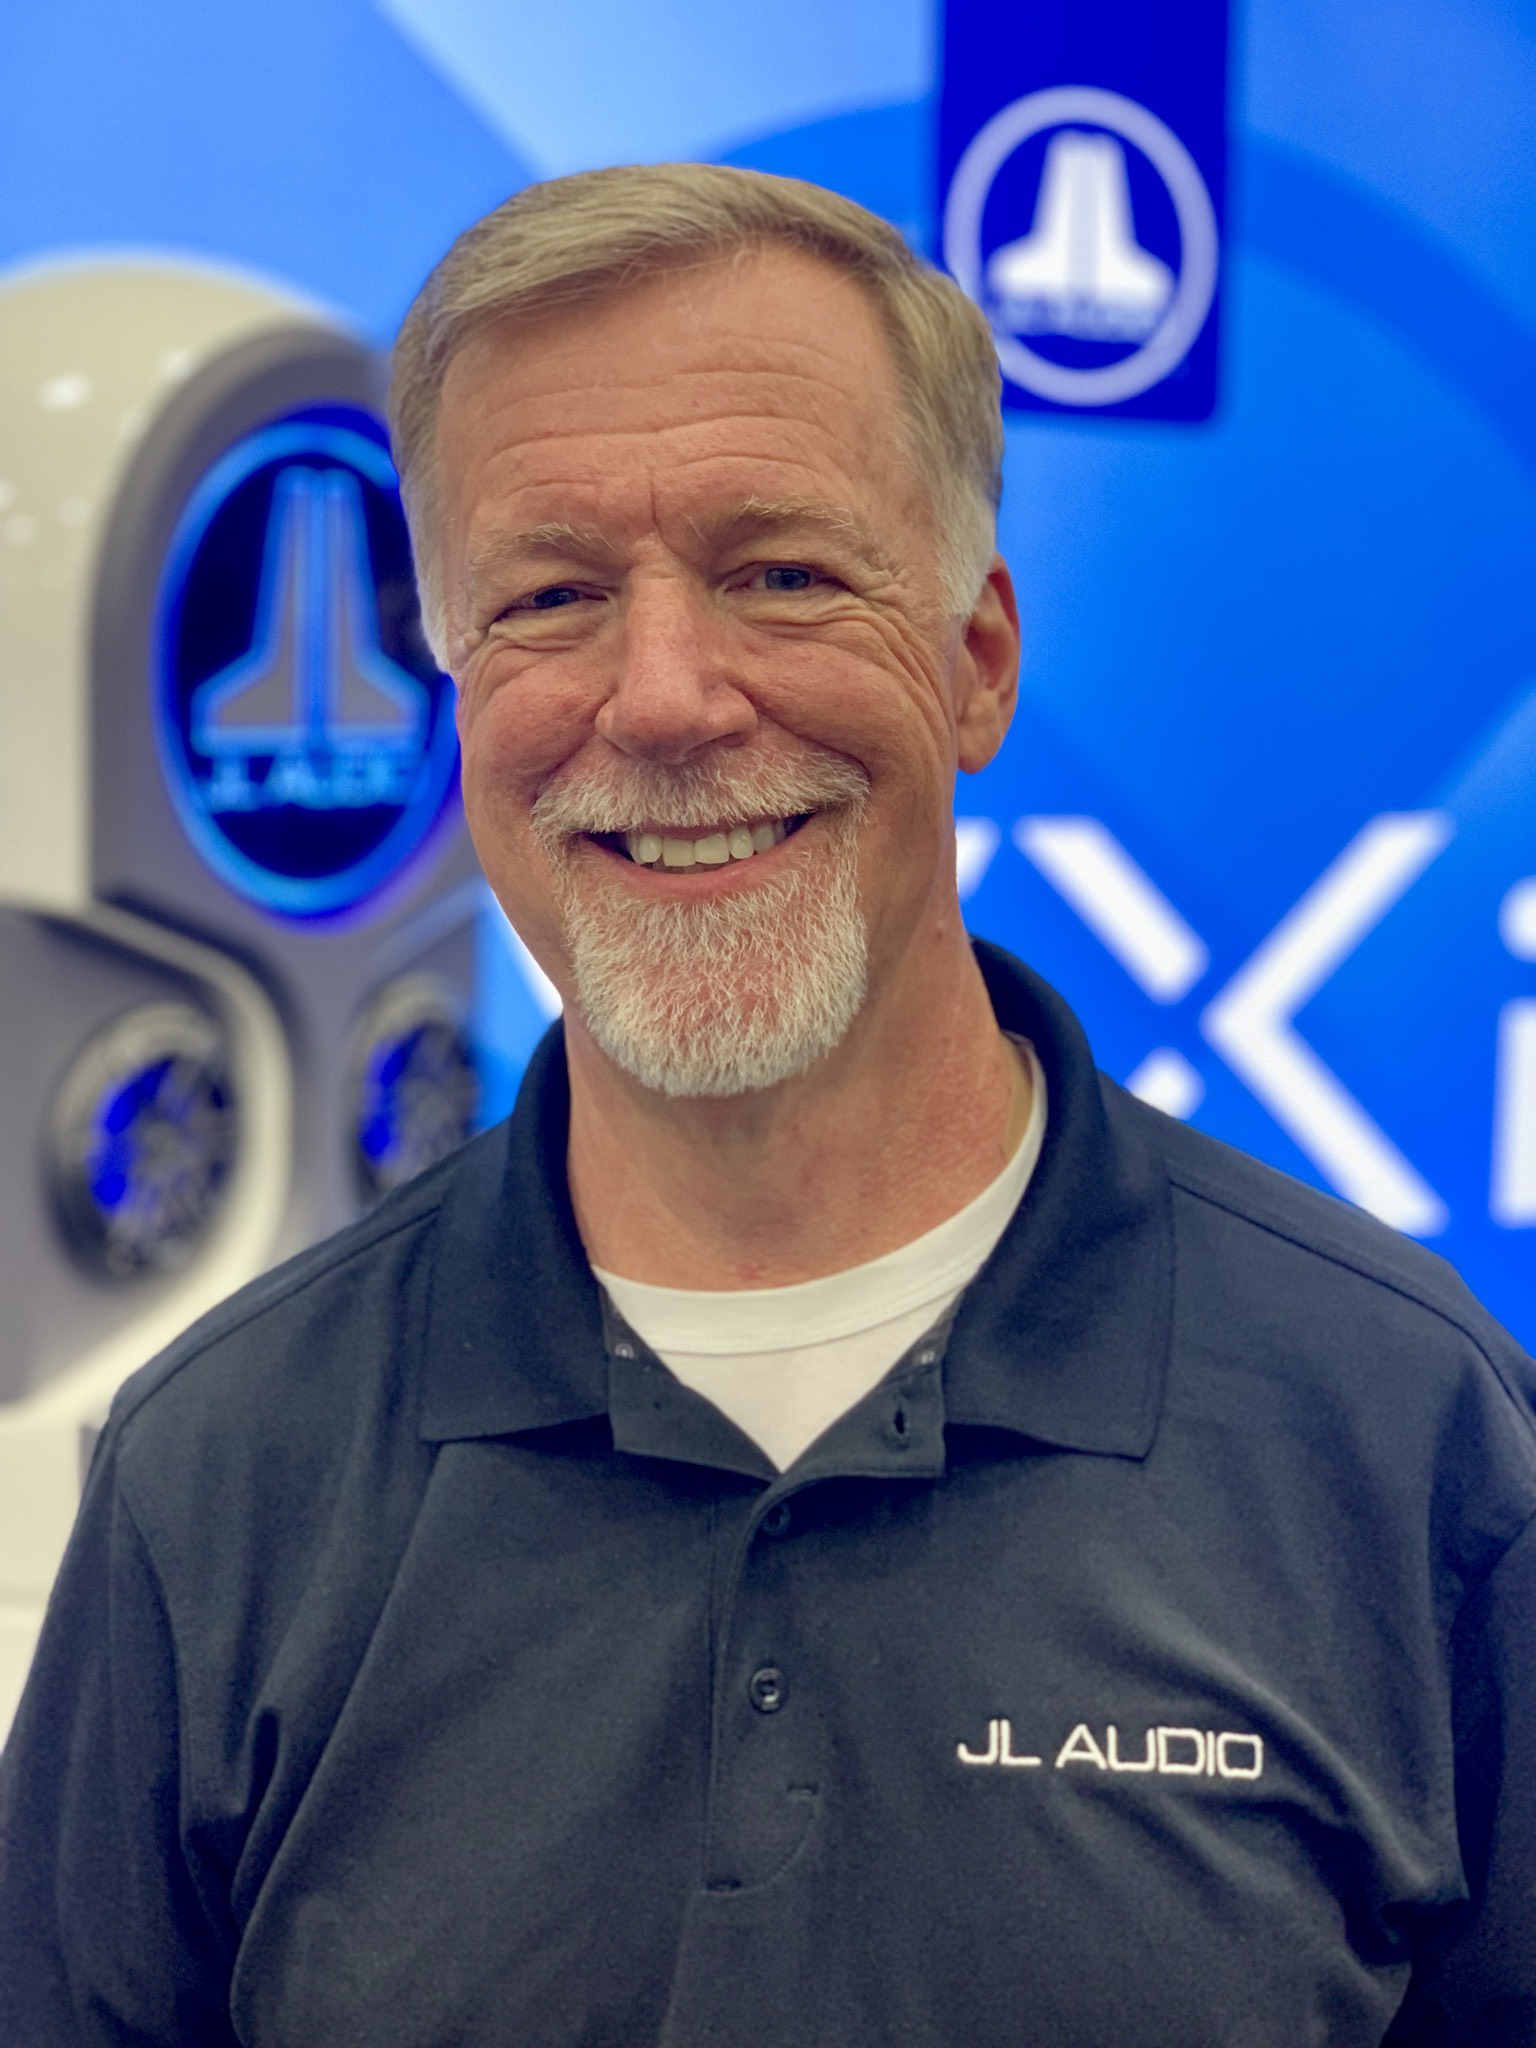 JL Audio has appointed Randy Davis as its new areasales director. Davis will be responsible for salesmanagement of multiple sa